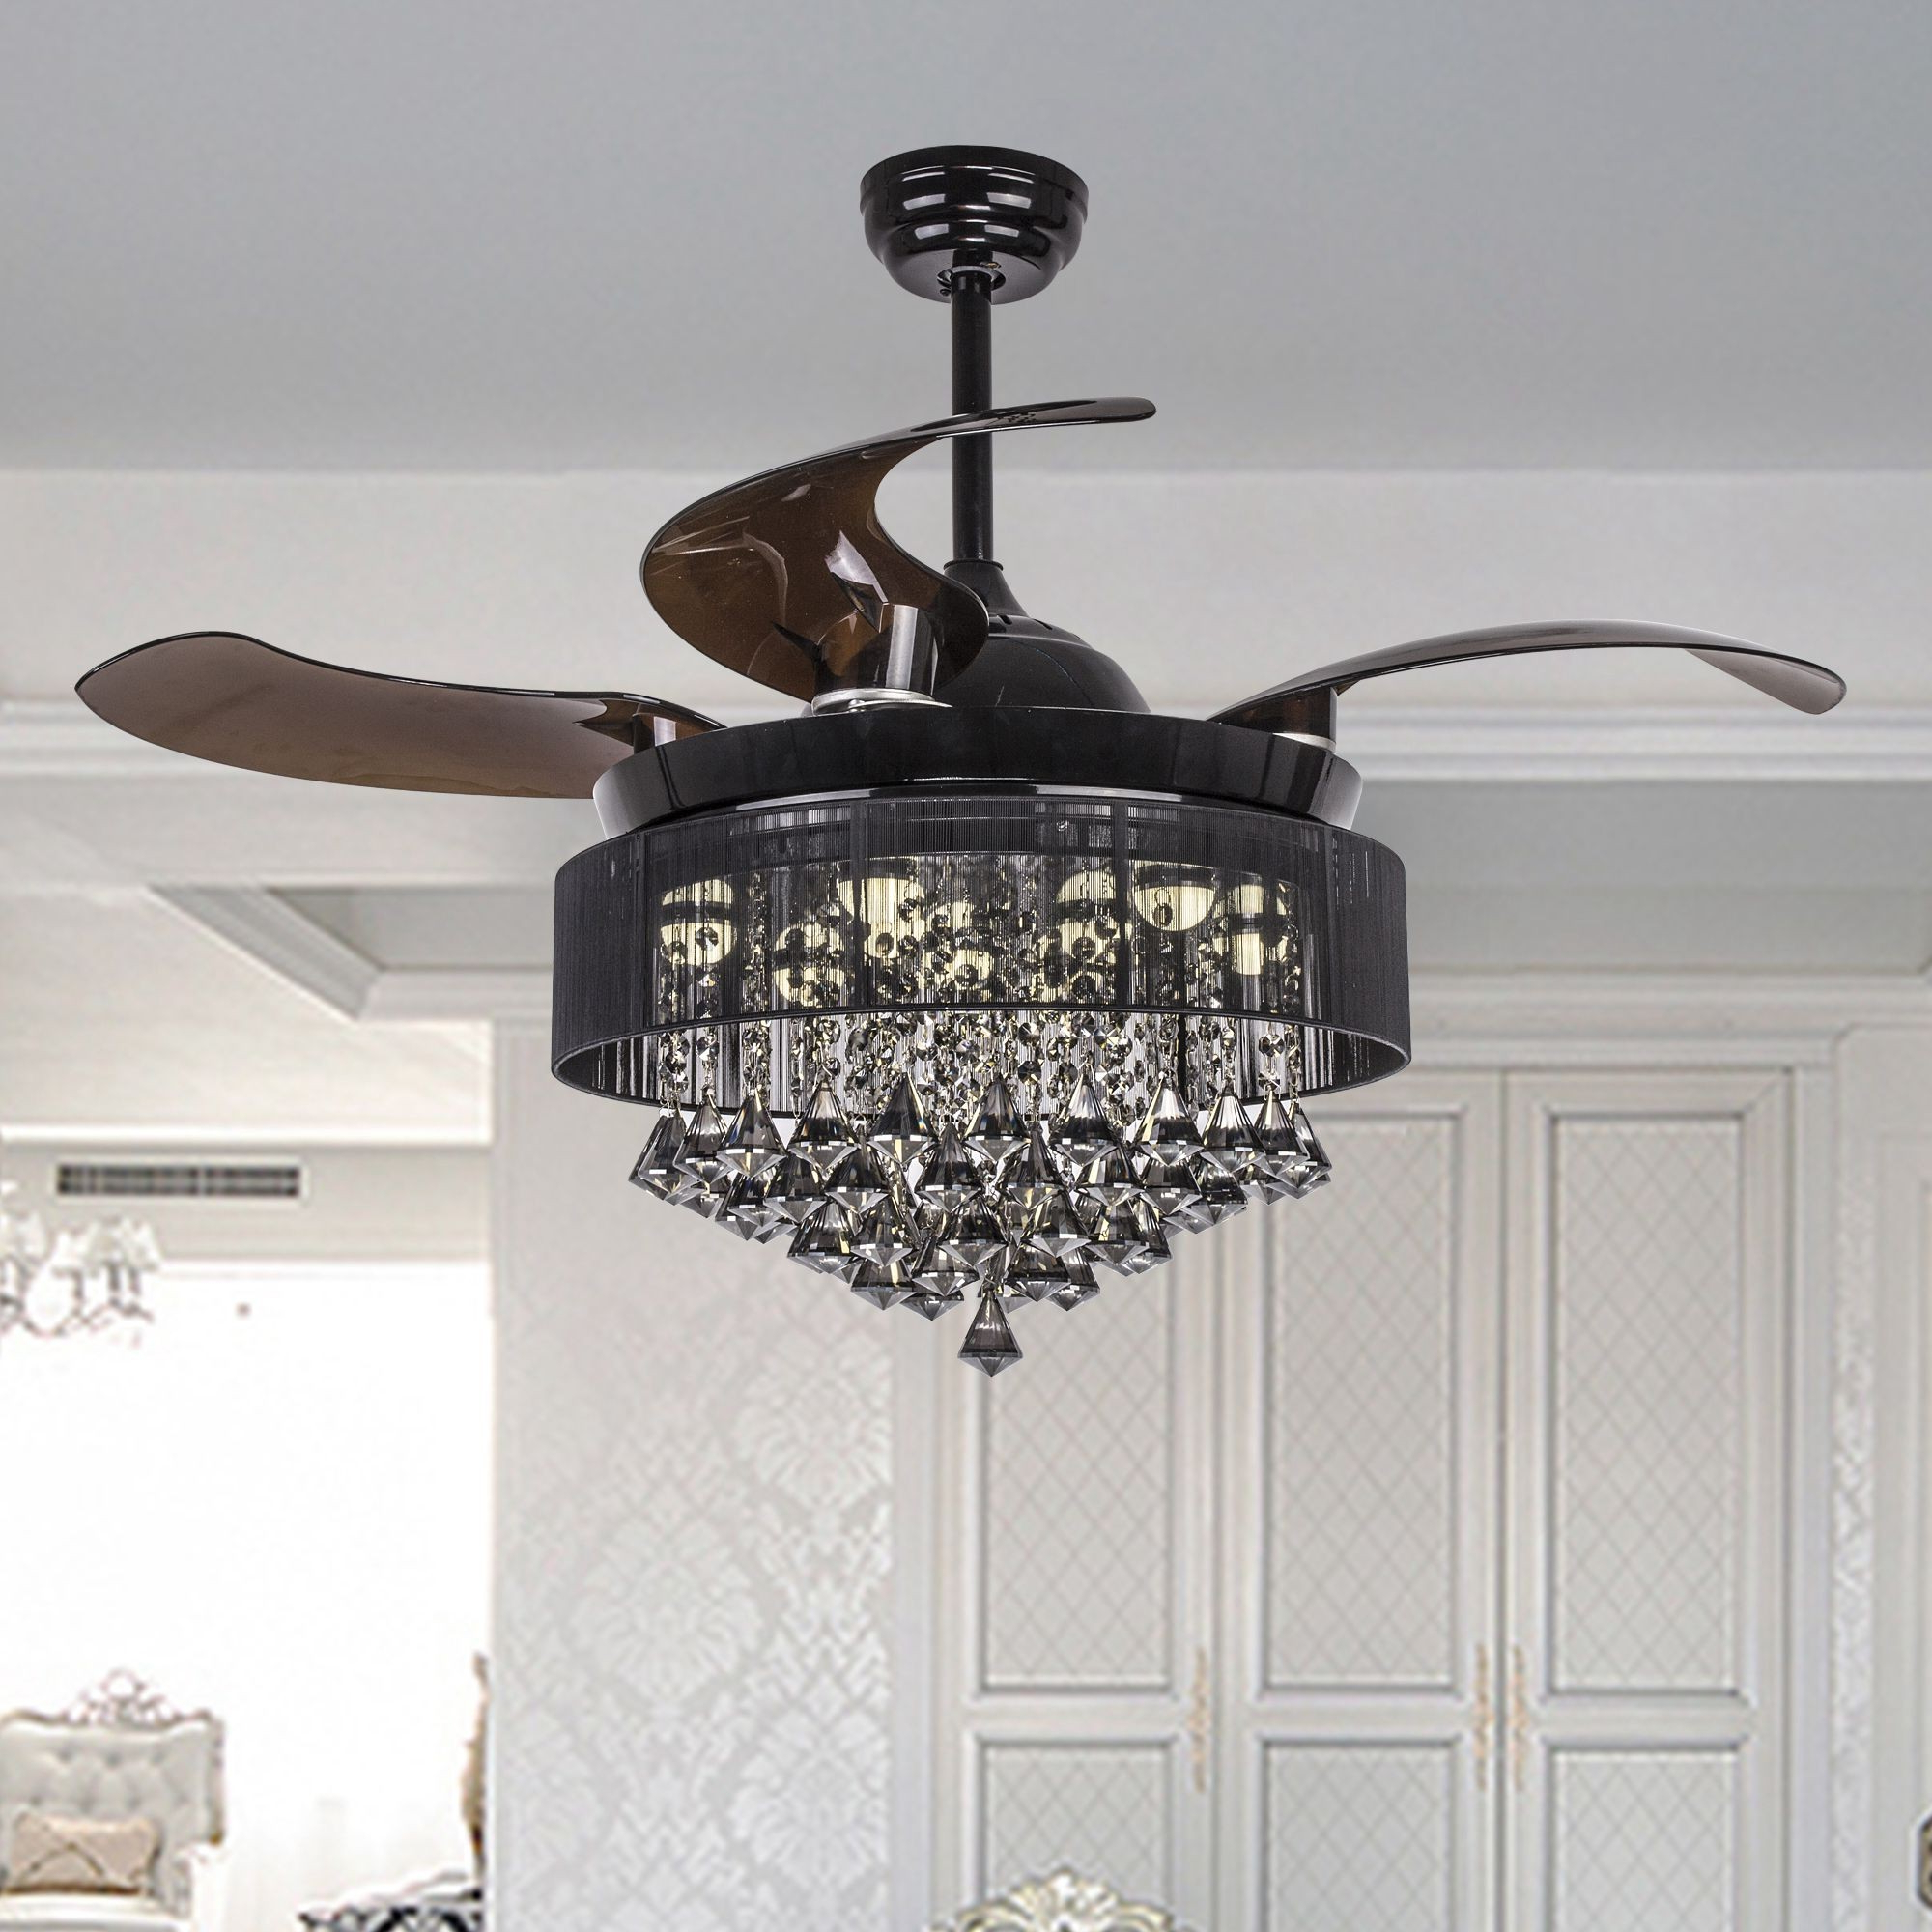 """Broxburne 4 Blade Led Ceiling Fans With Remote Inside Well Liked 46"""" Broxburne Modern Crystal Retractable Ceiling Fan With Led Lights And  Remote Control, Black (View 6 of 20)"""